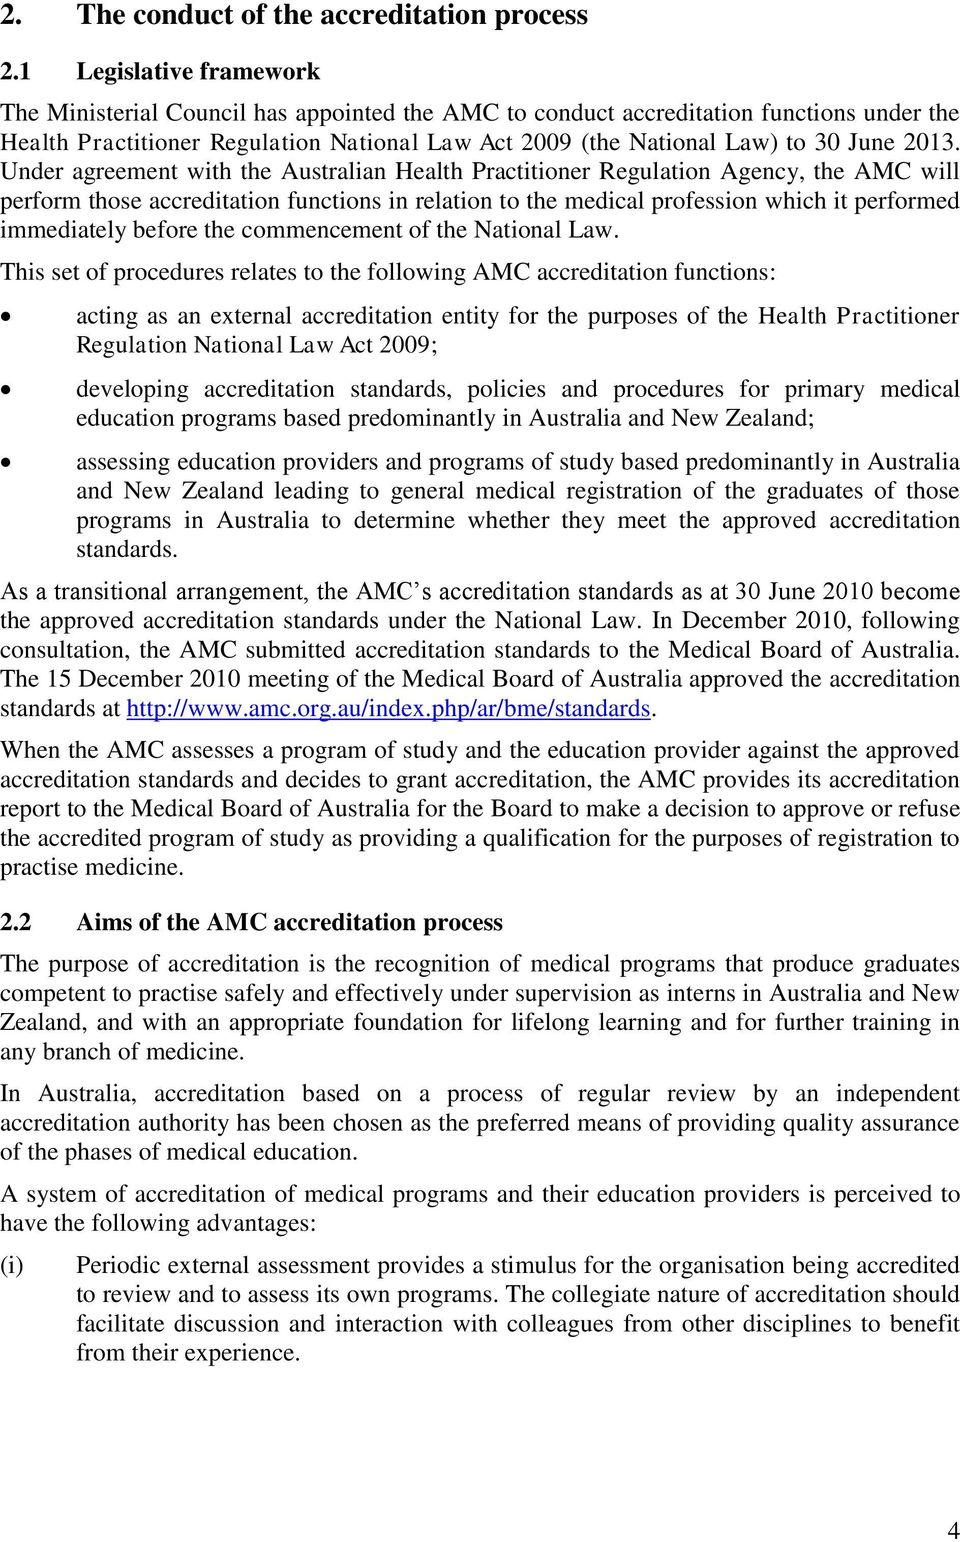 2013. Under agreement with the Australian Health Practitioner Regulation Agency, the AMC will perform those accreditation functions in relation to the medical profession which it performed